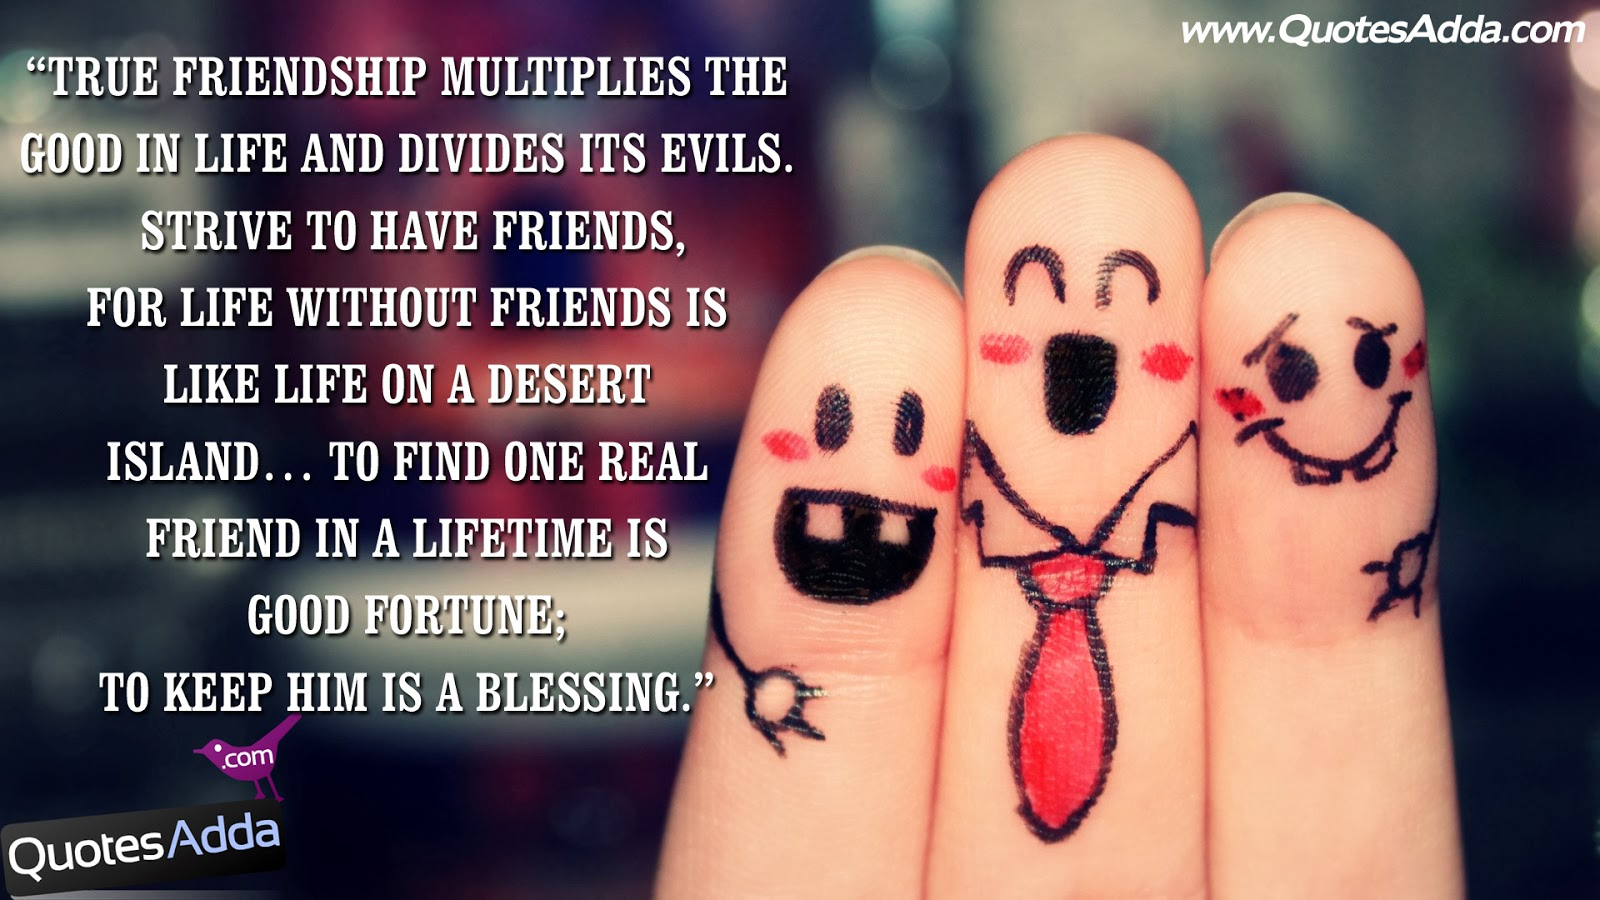 Friendship Quotes Wallpapers For Facebook